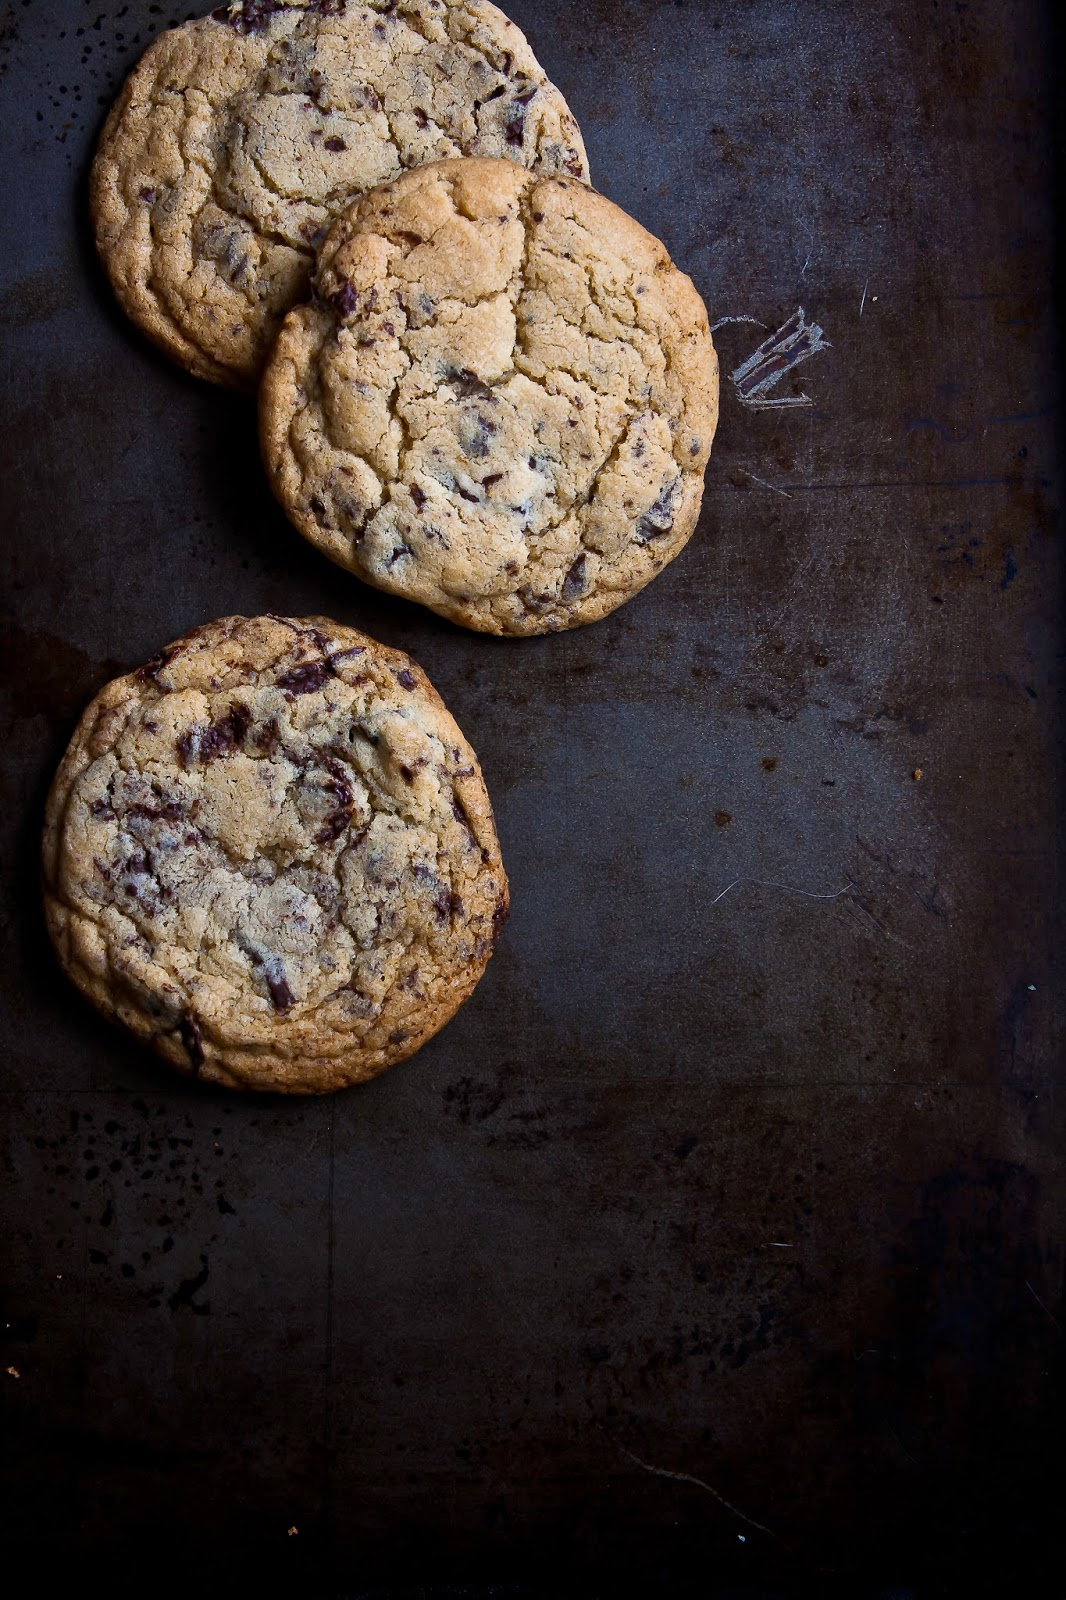 The Absolute Best Ever Chocolate Chip Cookie from Hint of Vanilla featured on foodiecrush.com